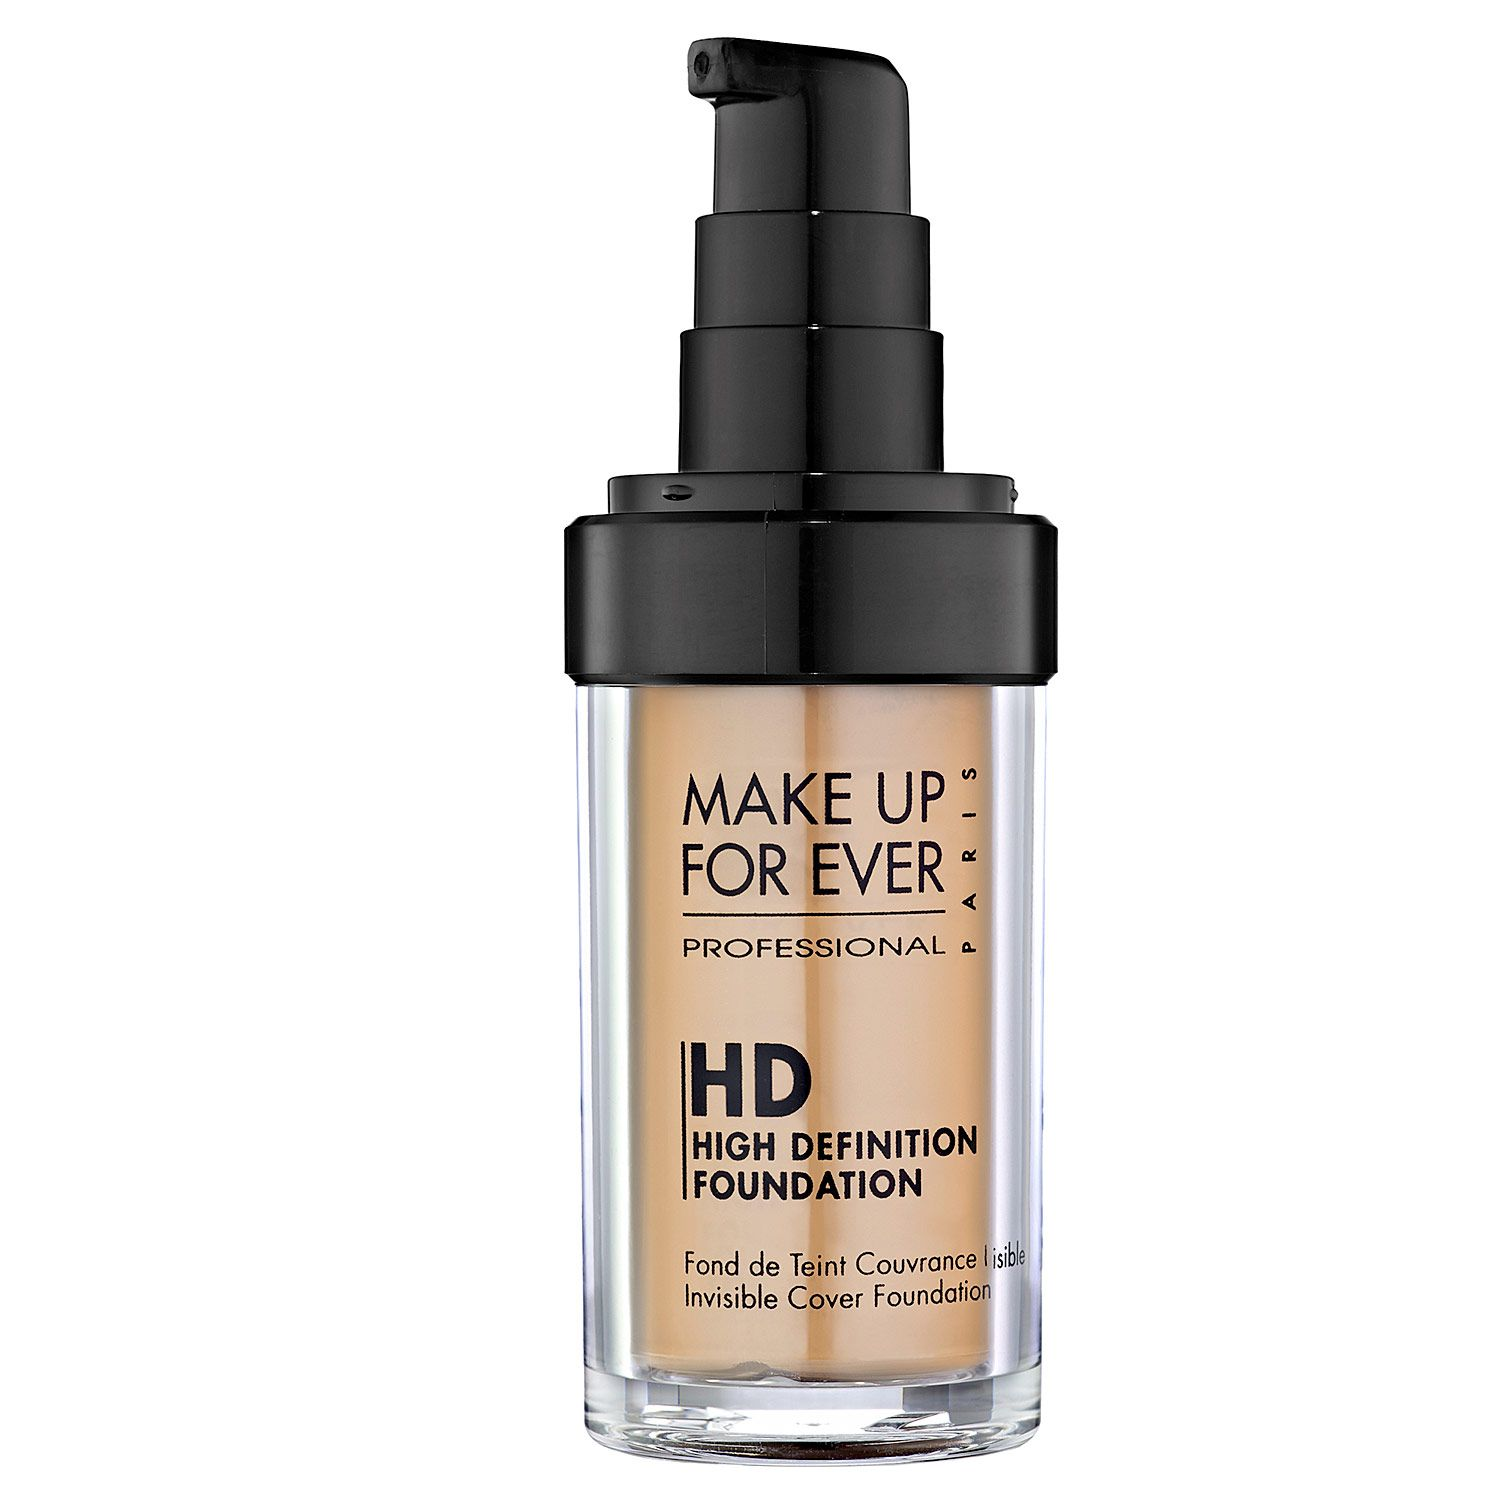 HD Invisible Cover Foundation MAKE UP FOR EVER Sephora